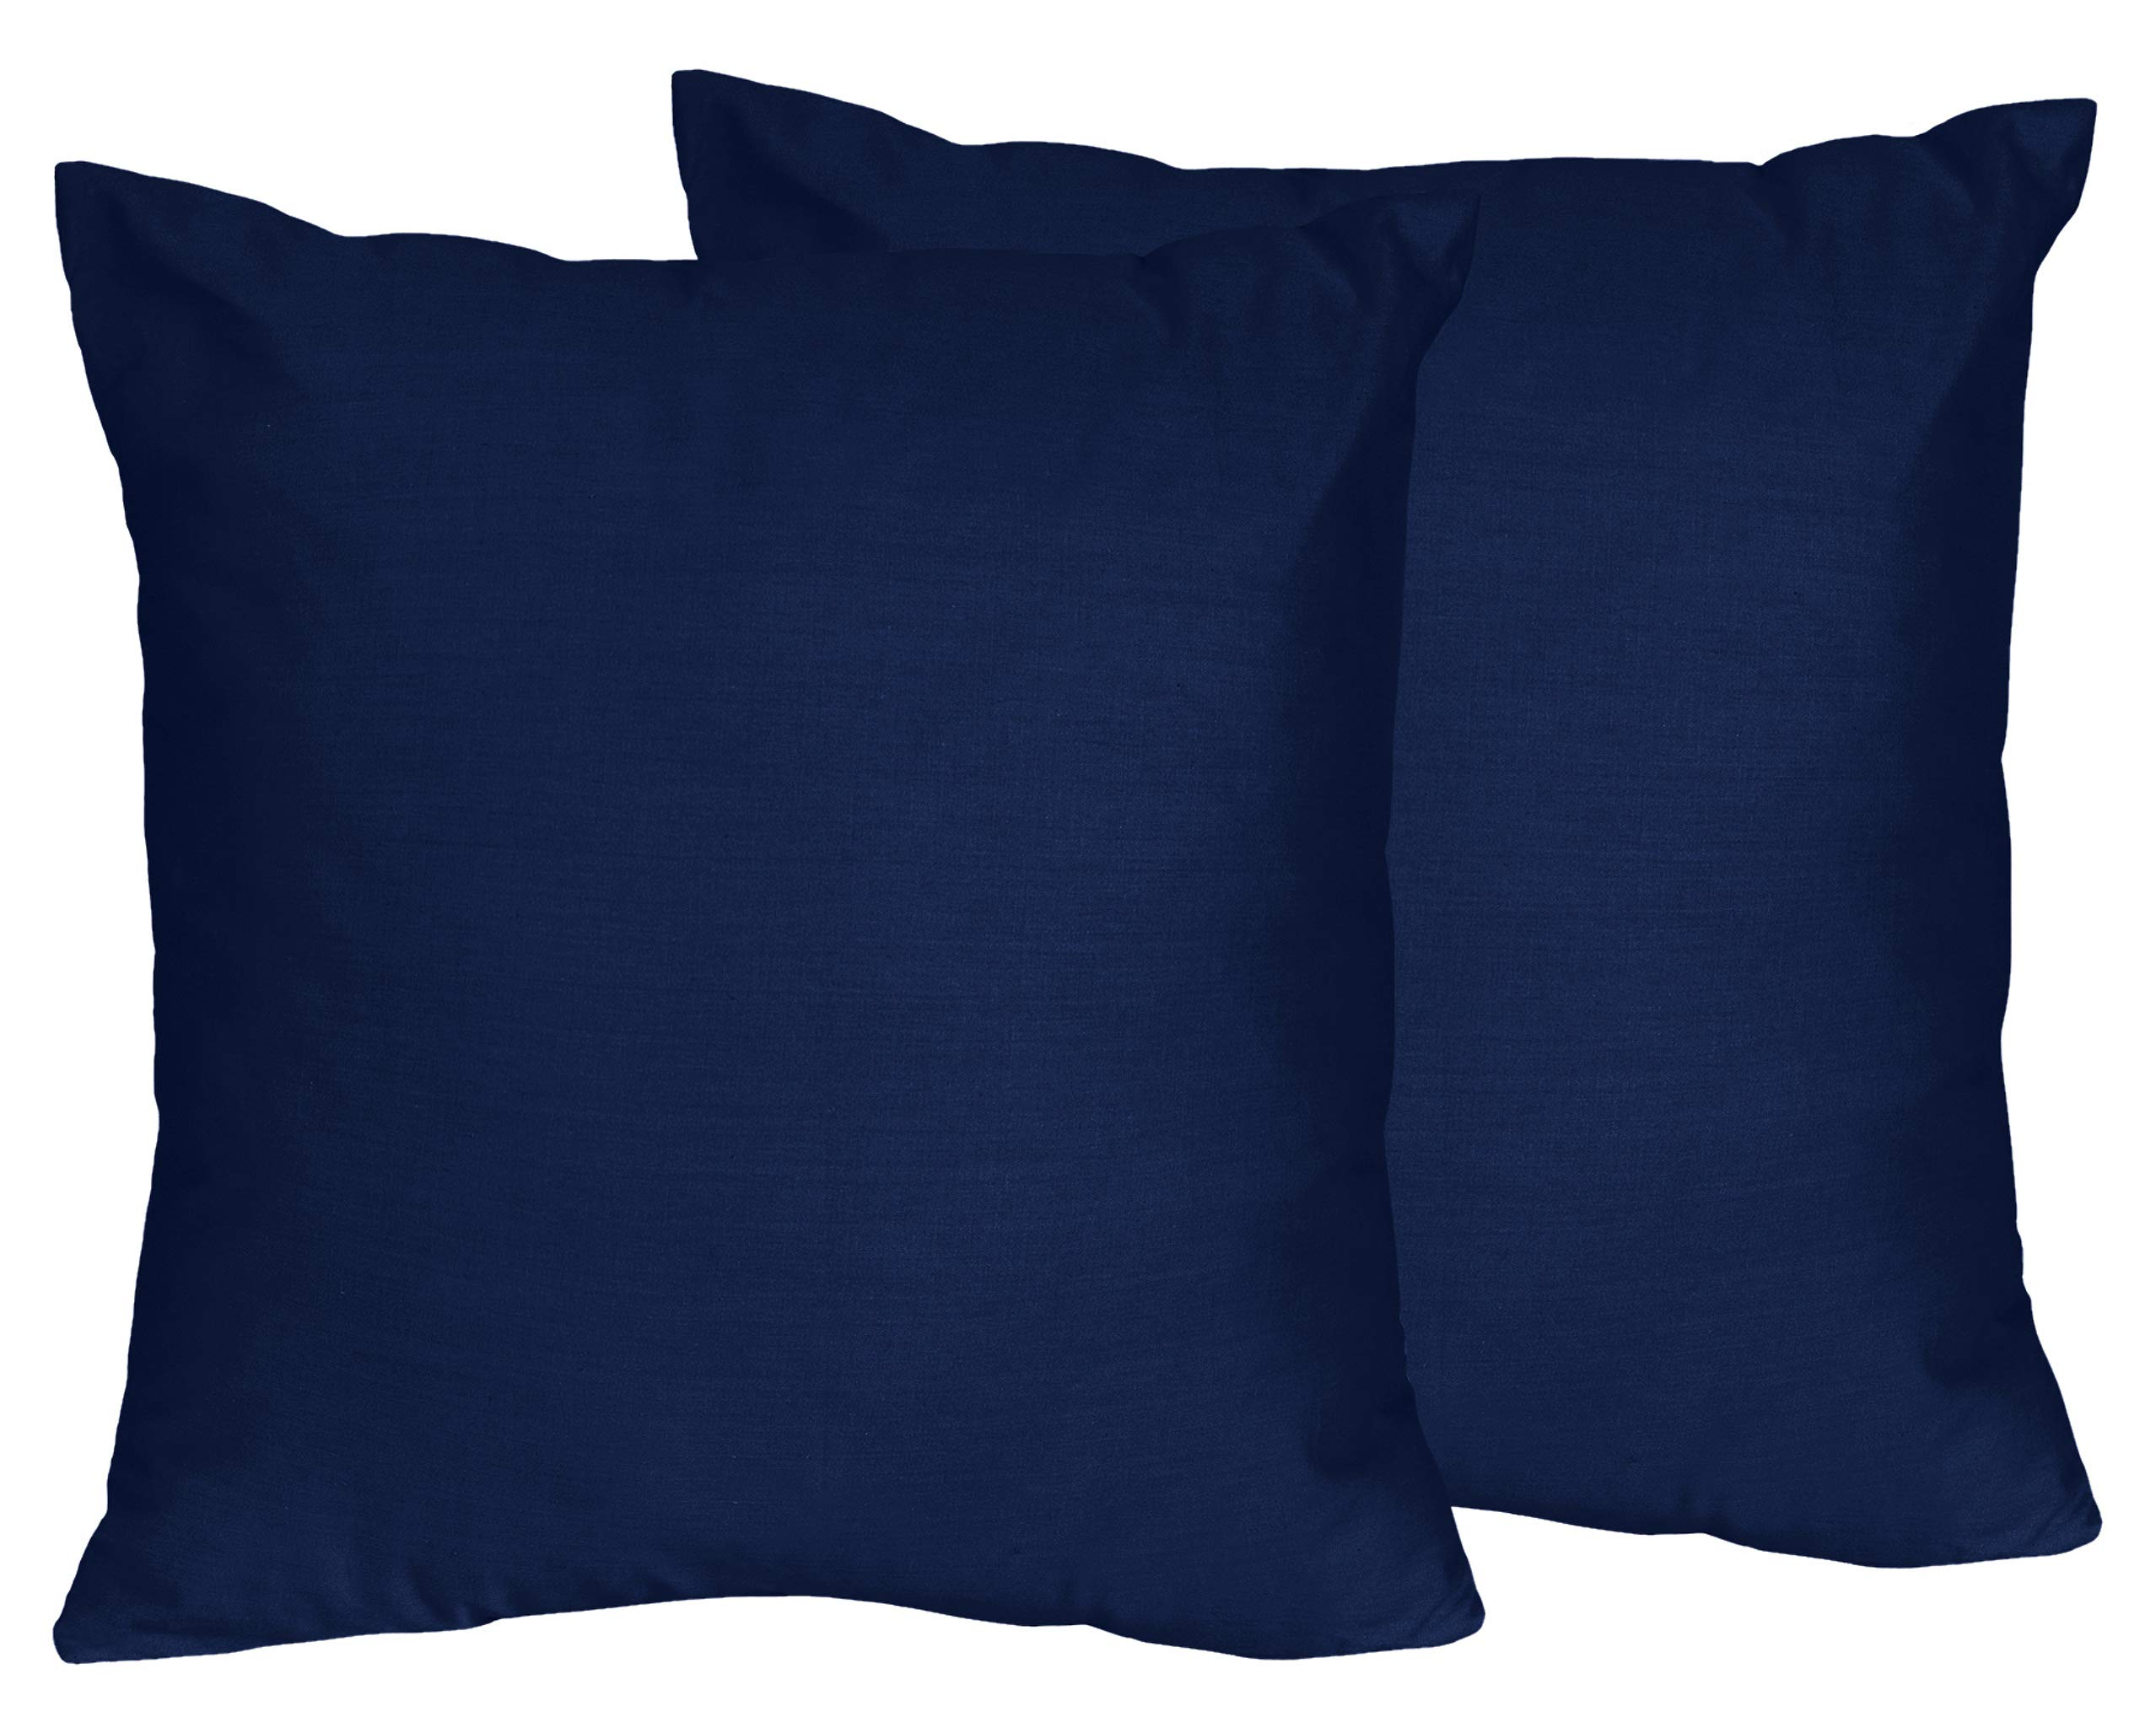 Sweet Jojo Designs 2-Piece Navy Decorative Accent Throw Pillows for Blue and Orange Stripe Collection by Sweet Jojo Designs